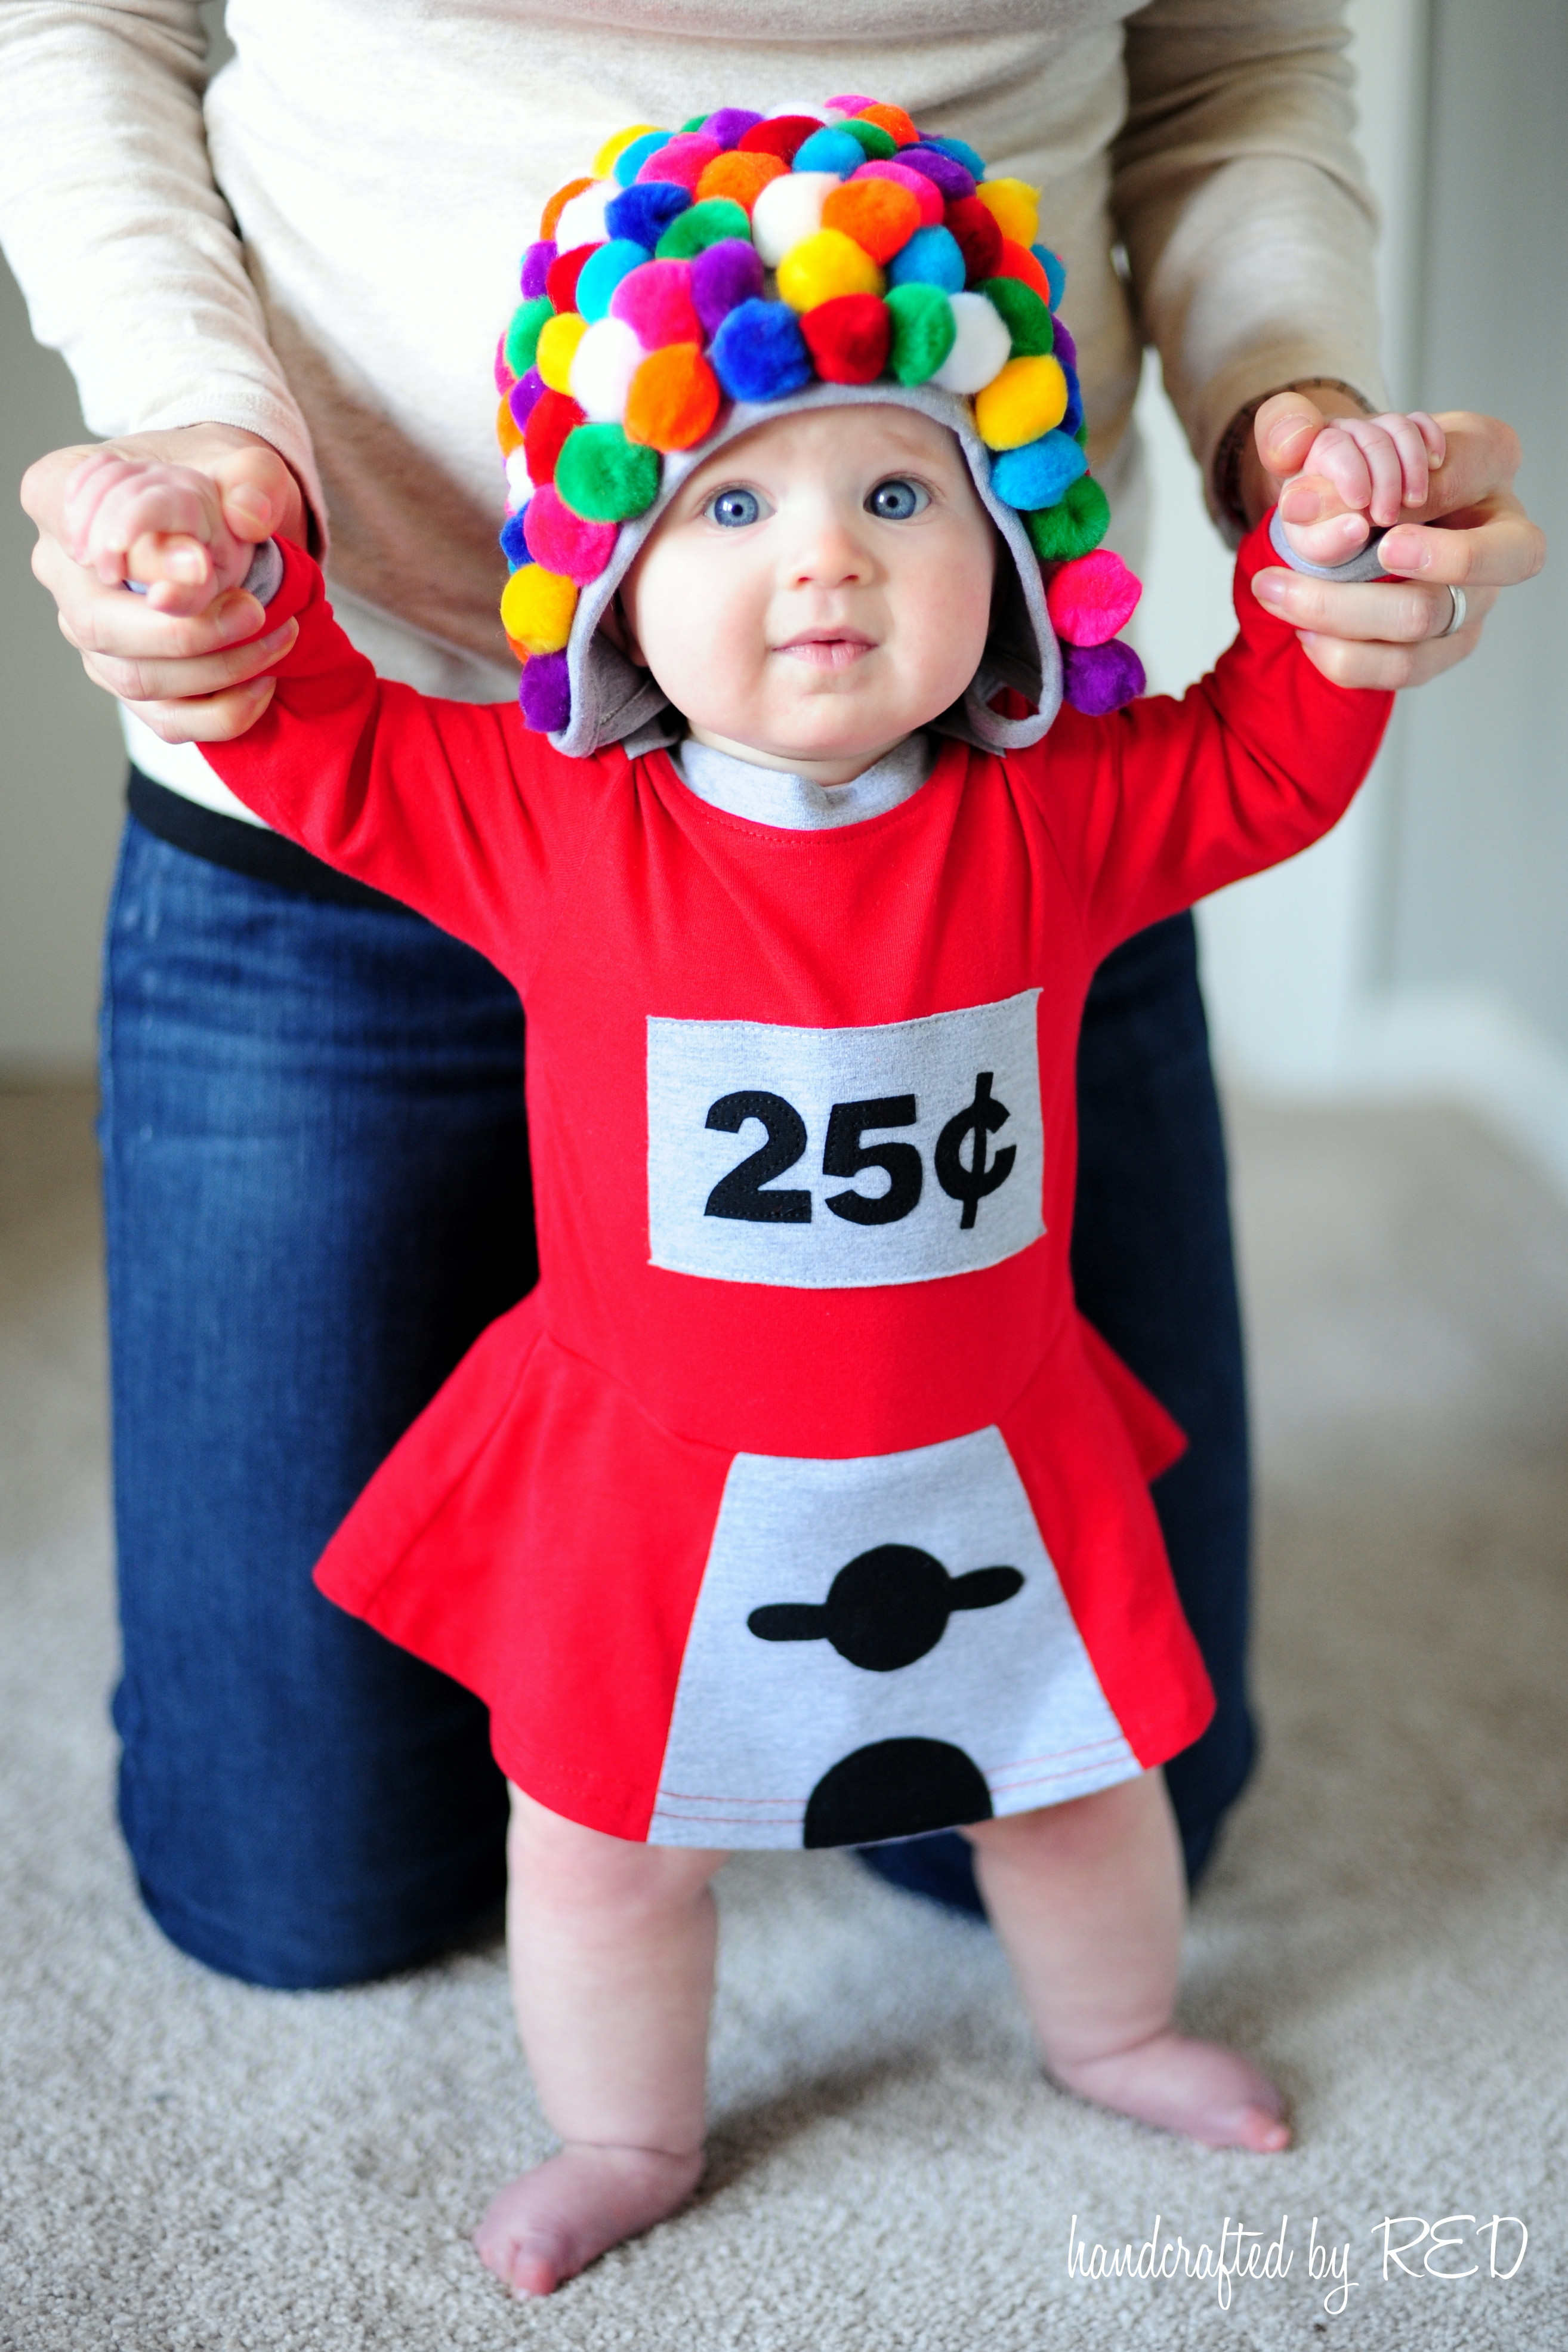 Best ideas about DIY Baby Costume . Save or Pin DIY Baby Gumball Machine Costume Peek a Boo Pages Now.